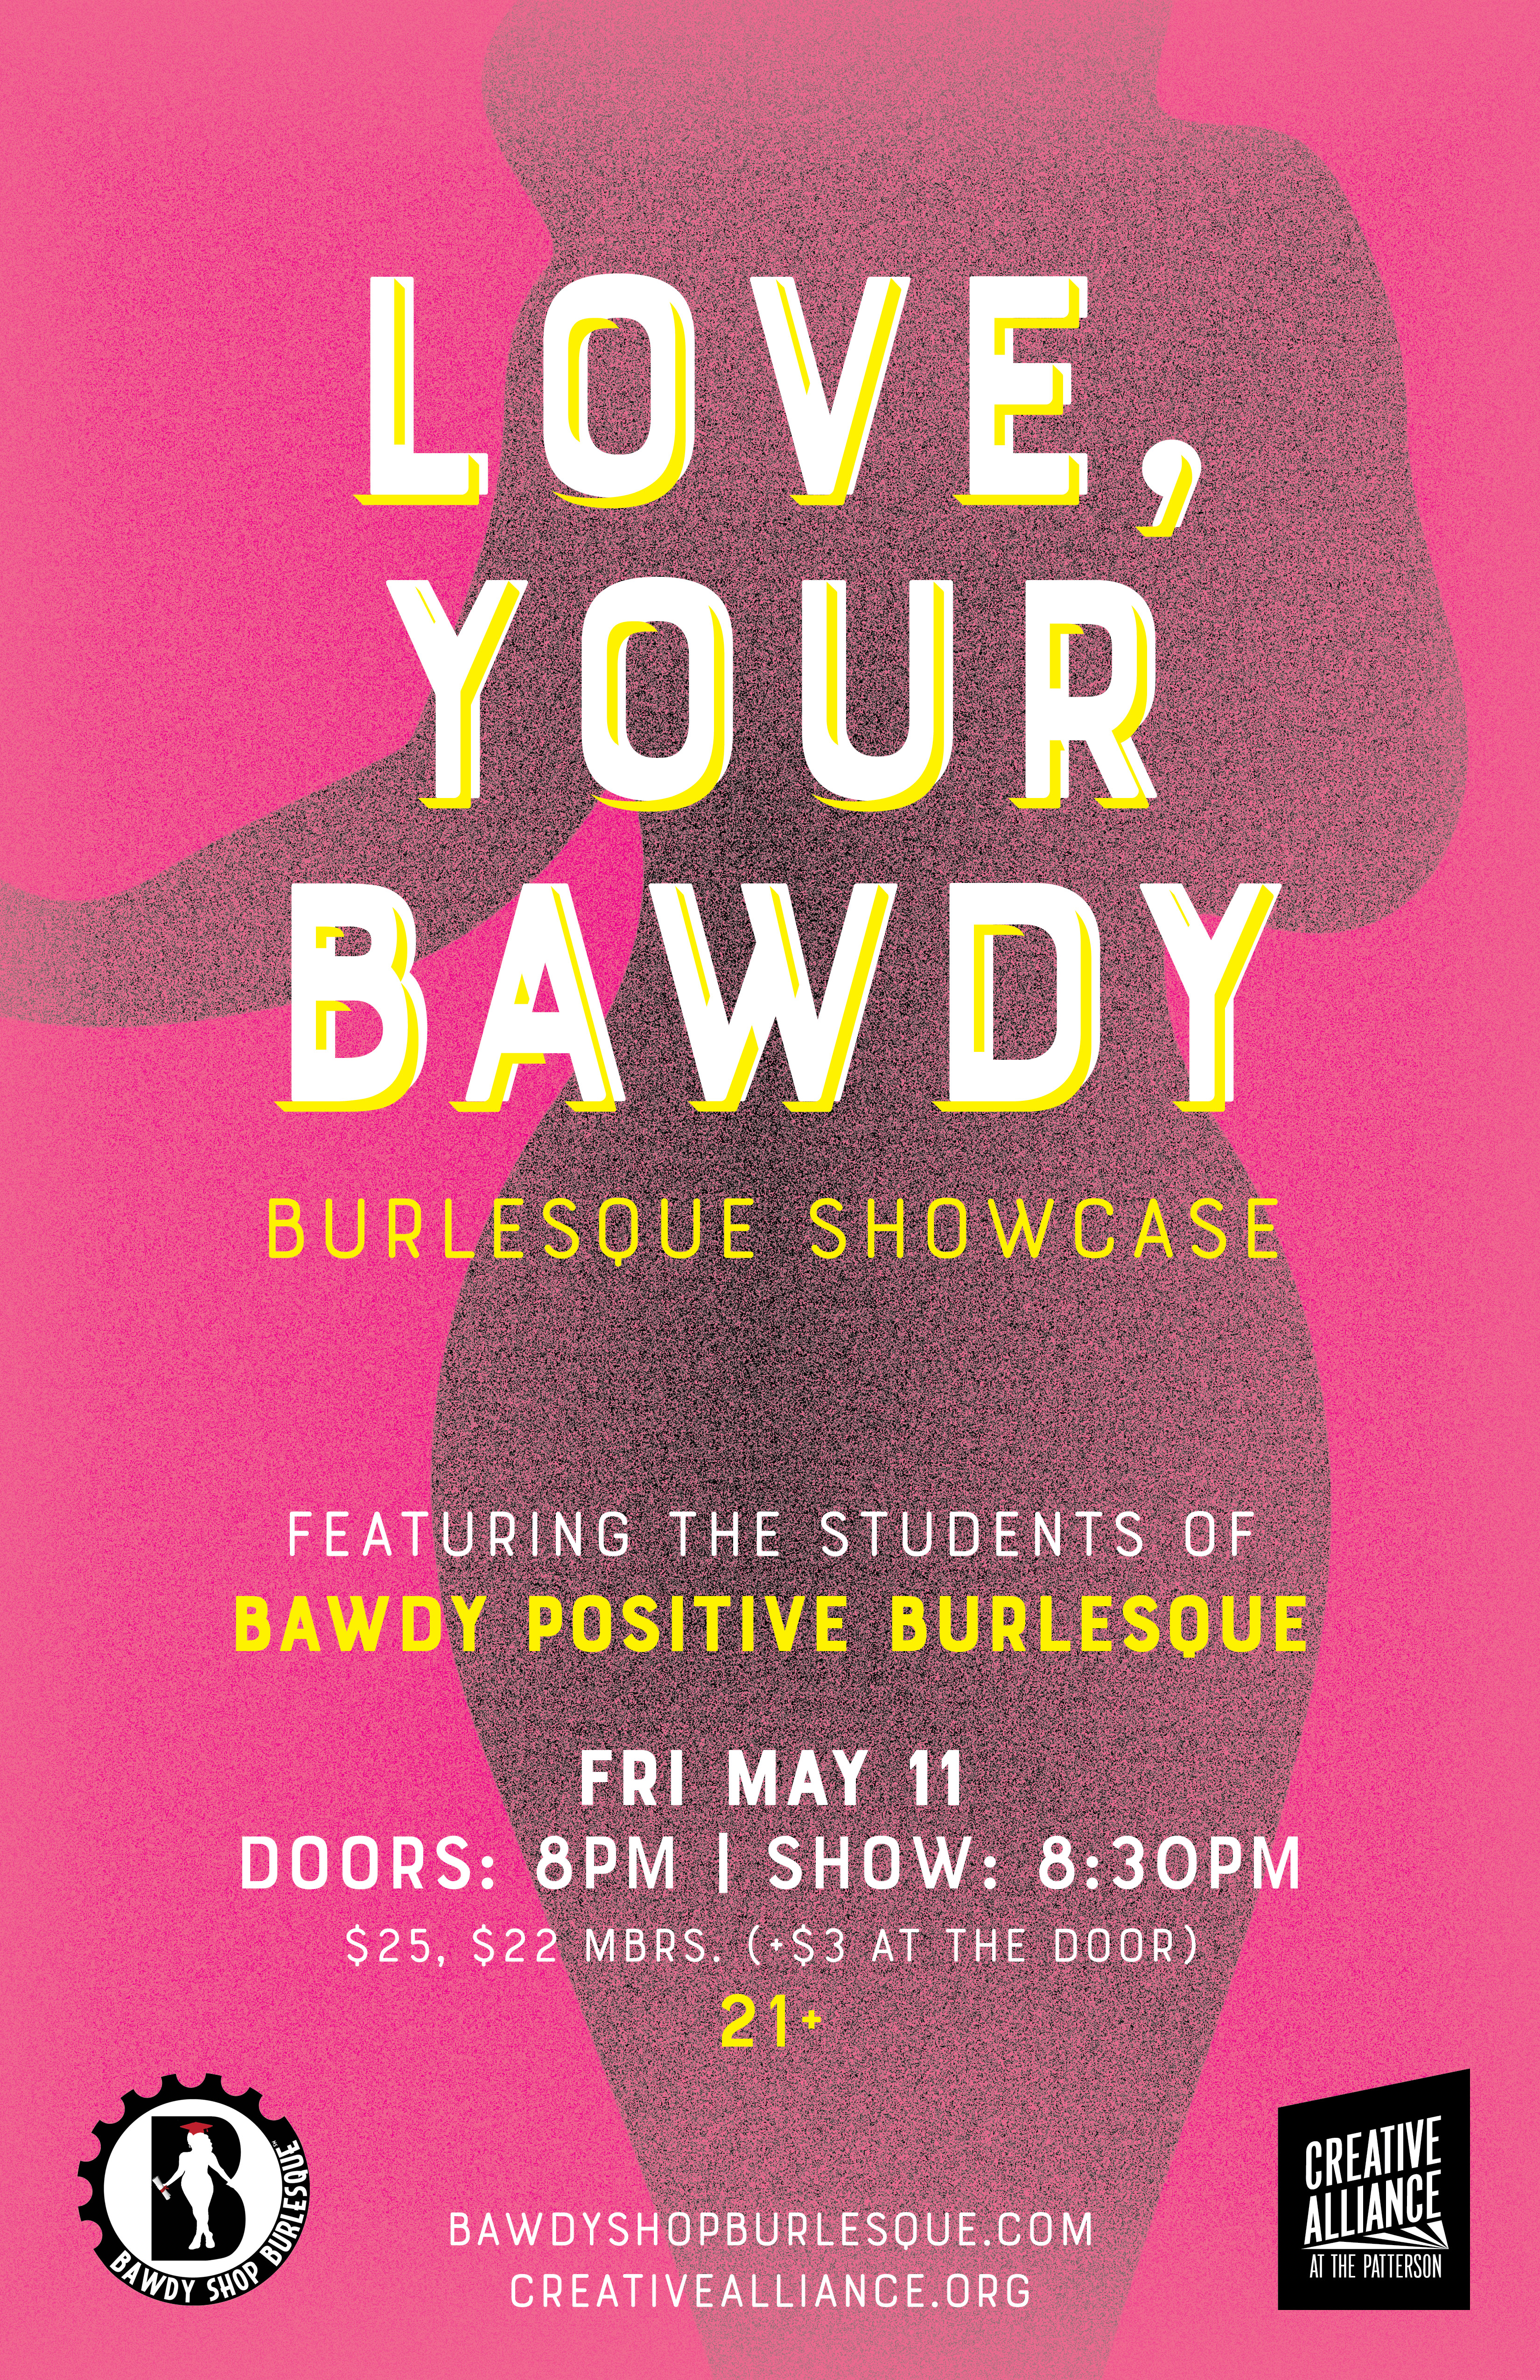 loveyourbawdy